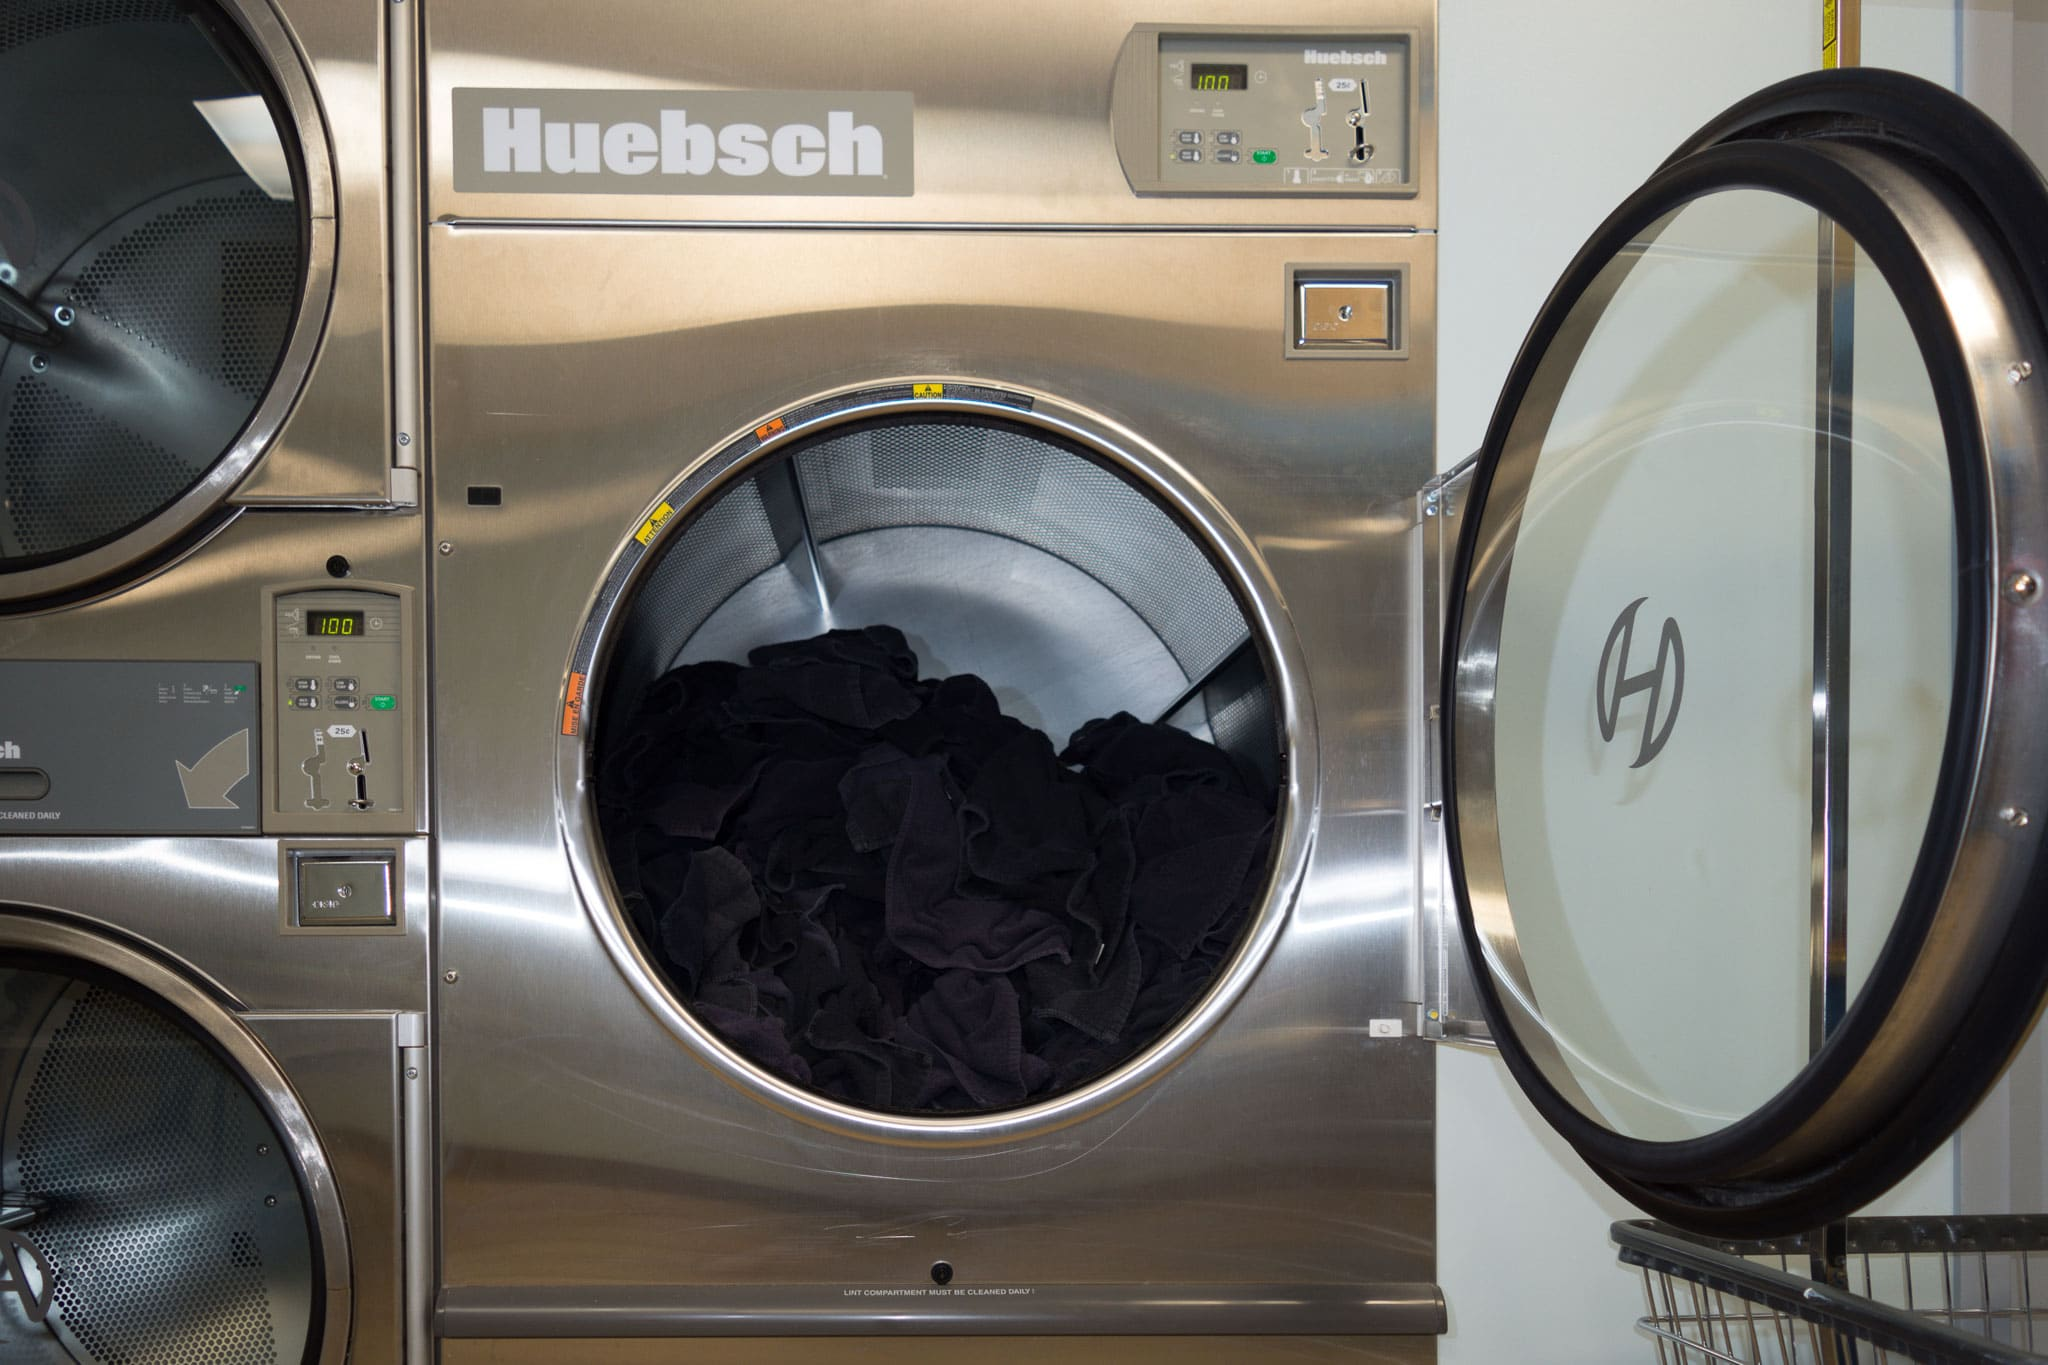 Huebsch commercial laundromat dryer toronto